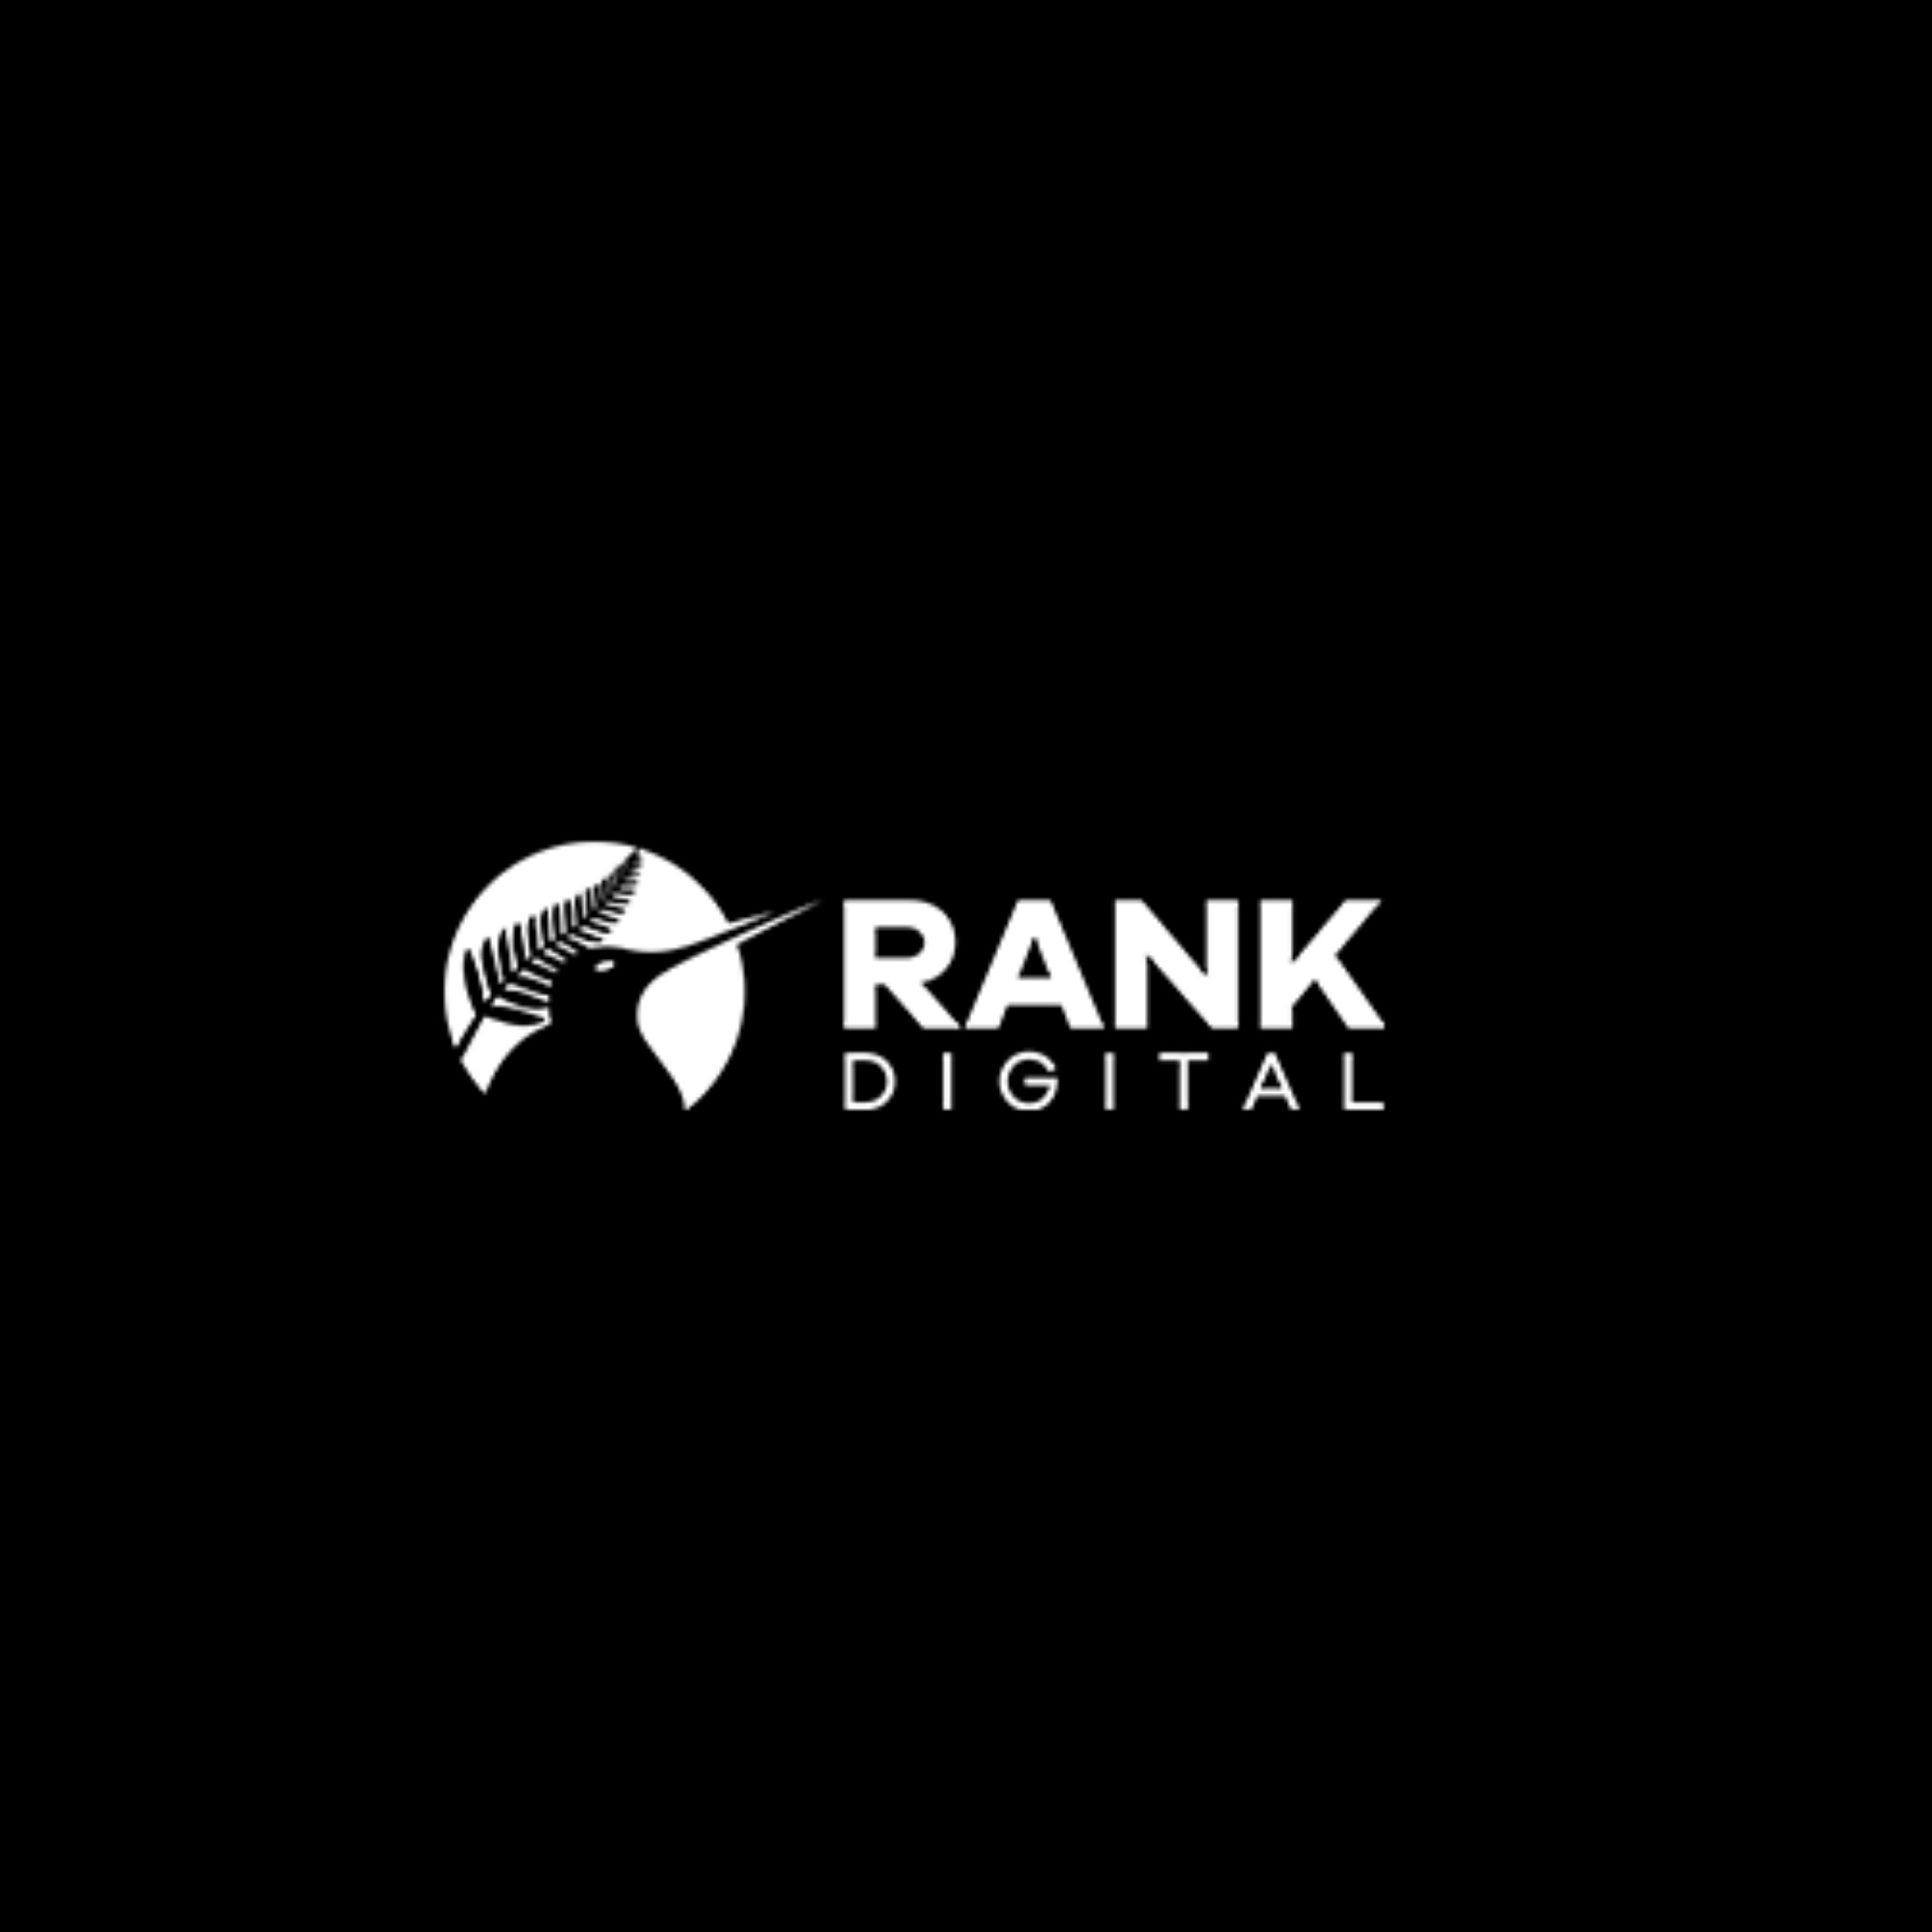 Rank Digital